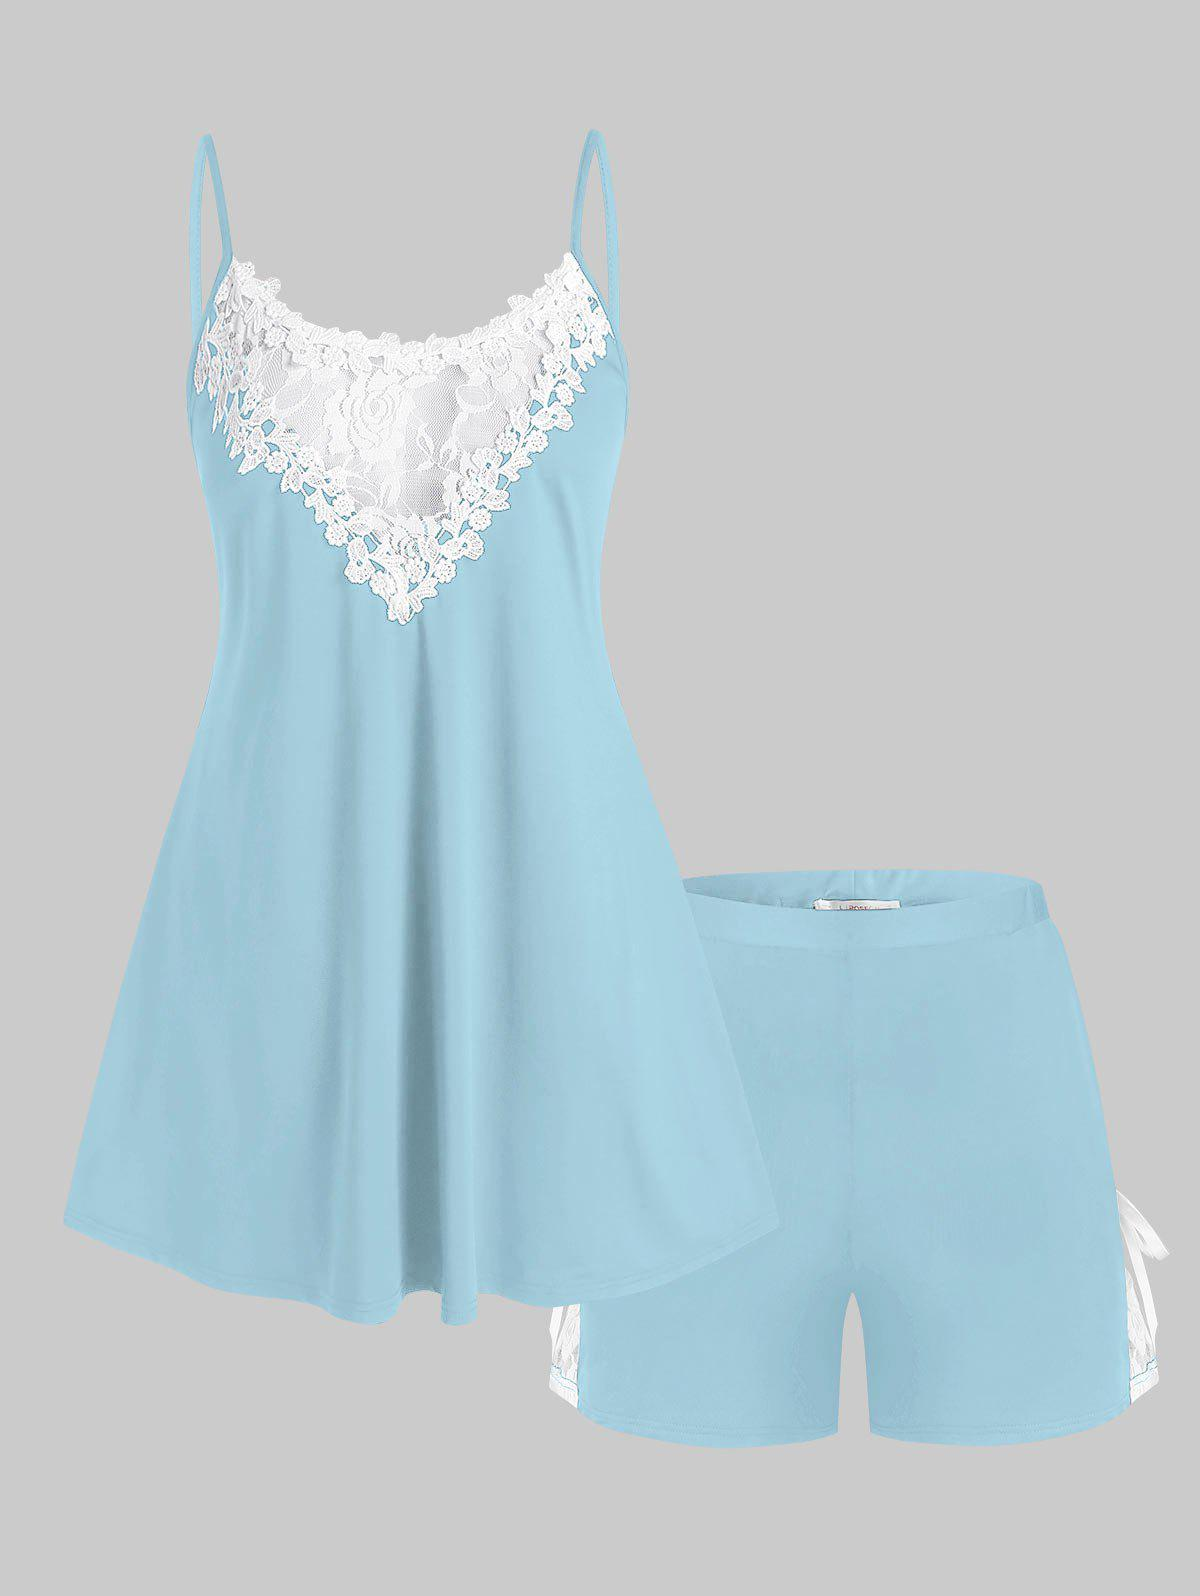 Plus Size Lace Panel Tied Two Piece Pajama Shorts Set - LIGHT BLUE 5X